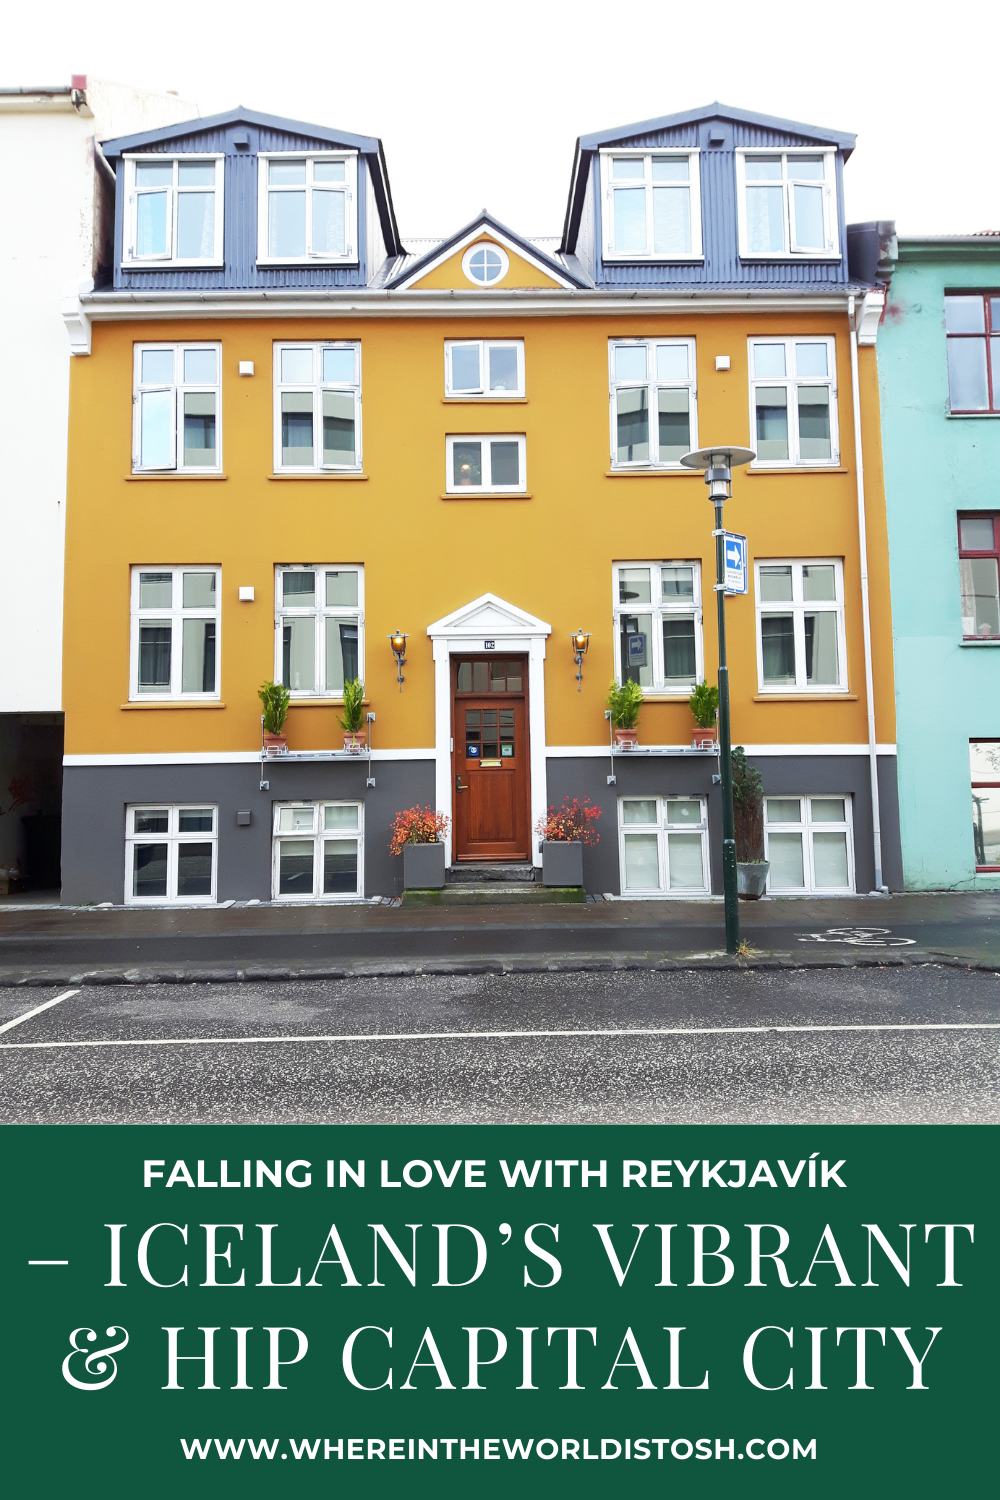 Reykjavik Hip Capital City